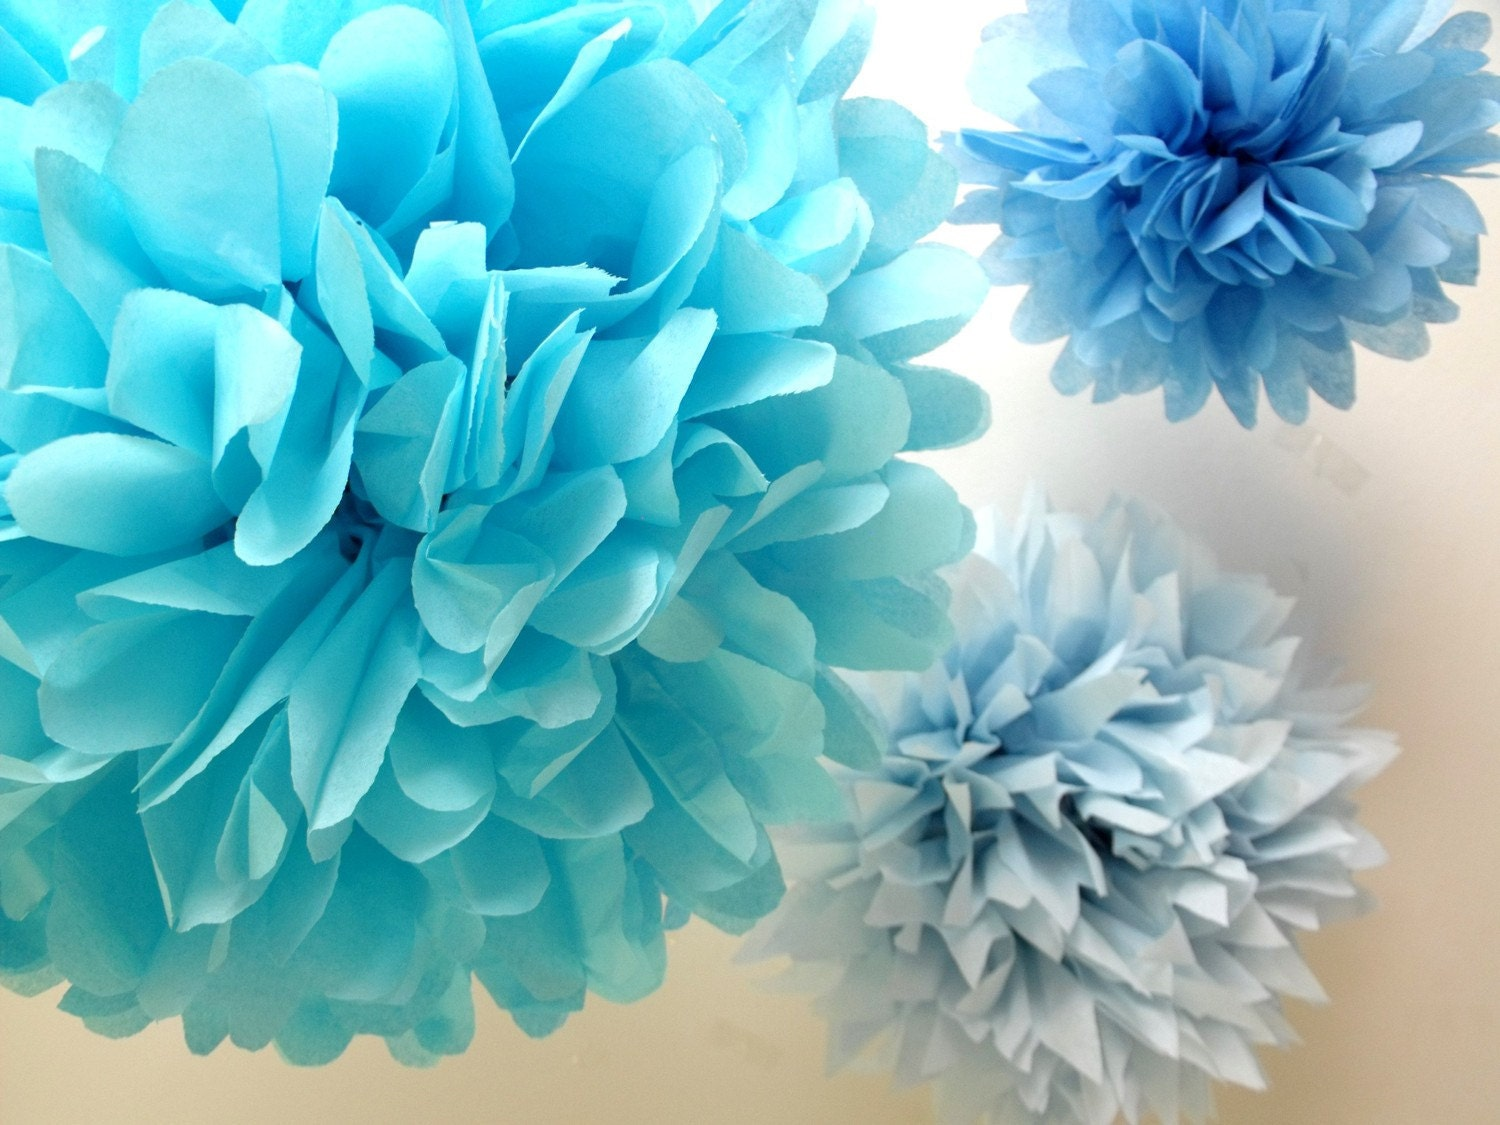 Princess party decorations diy paper pompoms 9 poms for Paper decorations diy